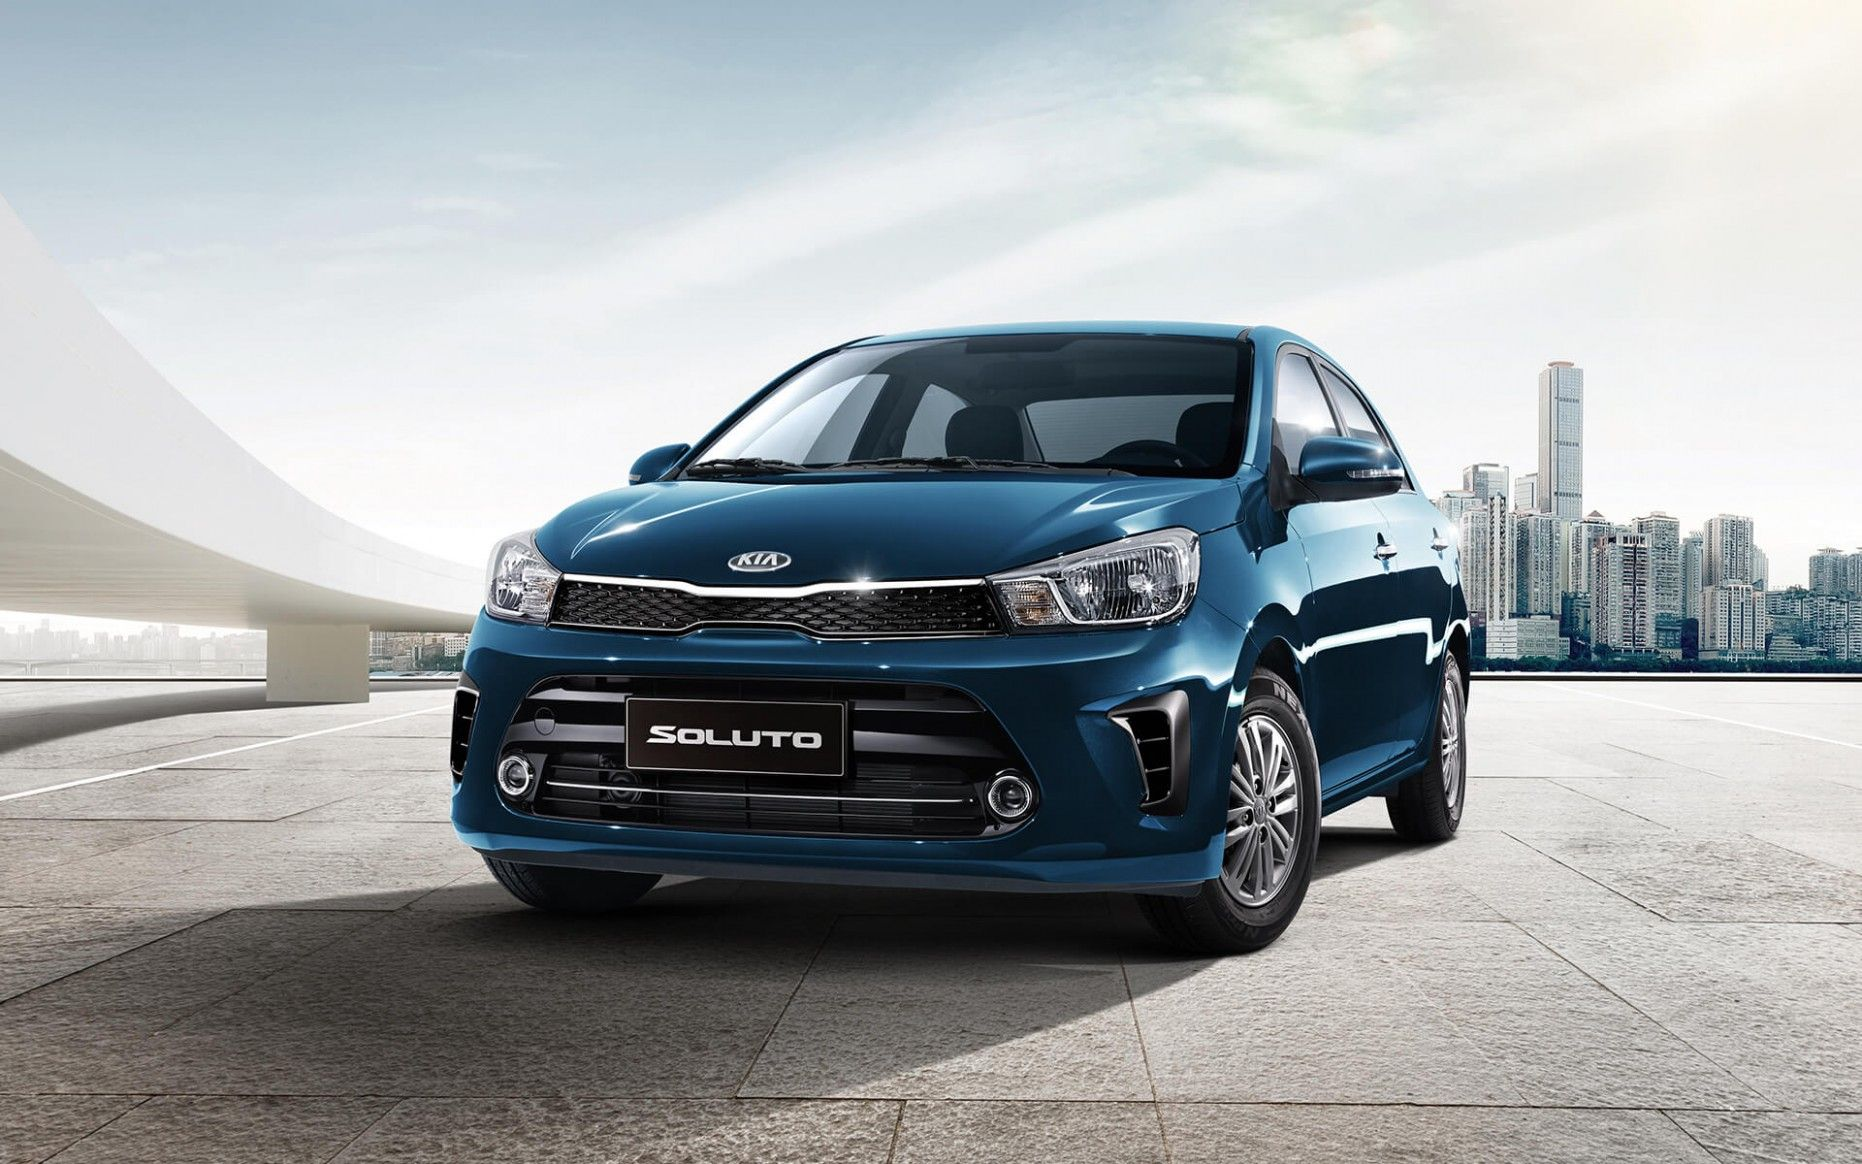 Toyota Vios 2020 Price History Toyota Vios 2020 Price It S Clearly A Blooming Ablaze For Toyota Motor Philippines Tmp As They Bare The Al Kia Car Dealership